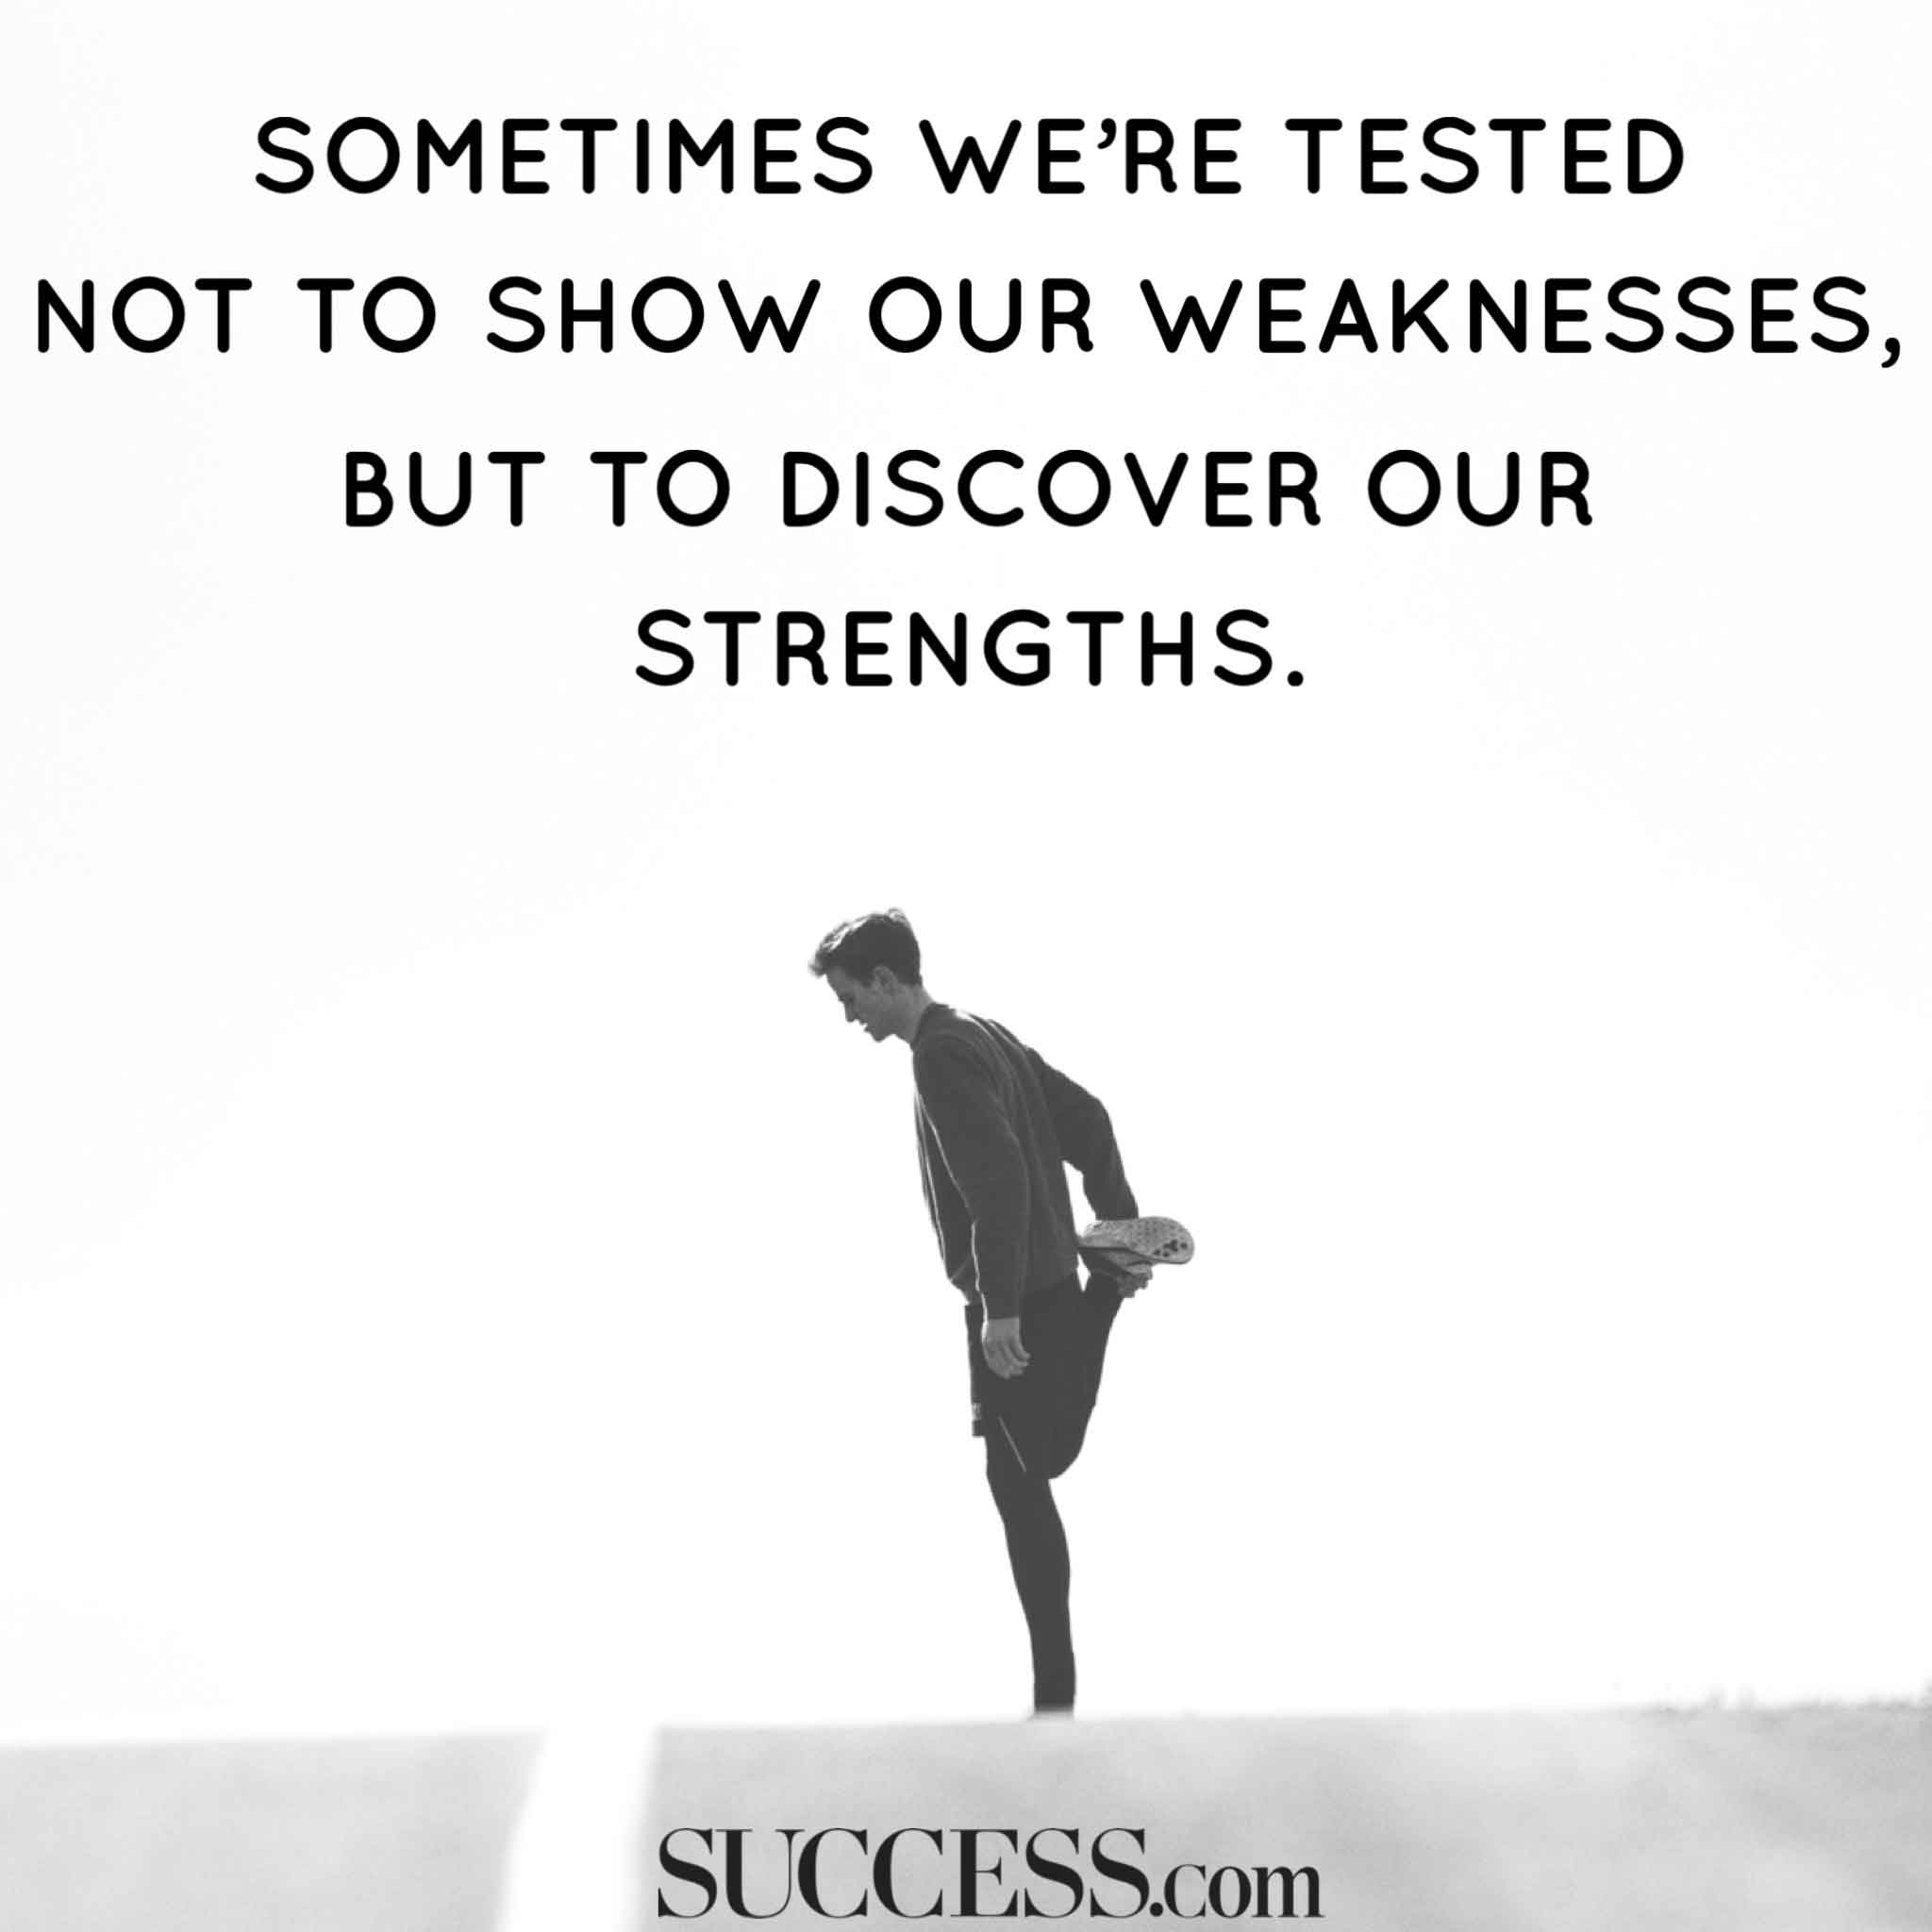 [IMAGE] SOMETIMES WE'RE TESTED…